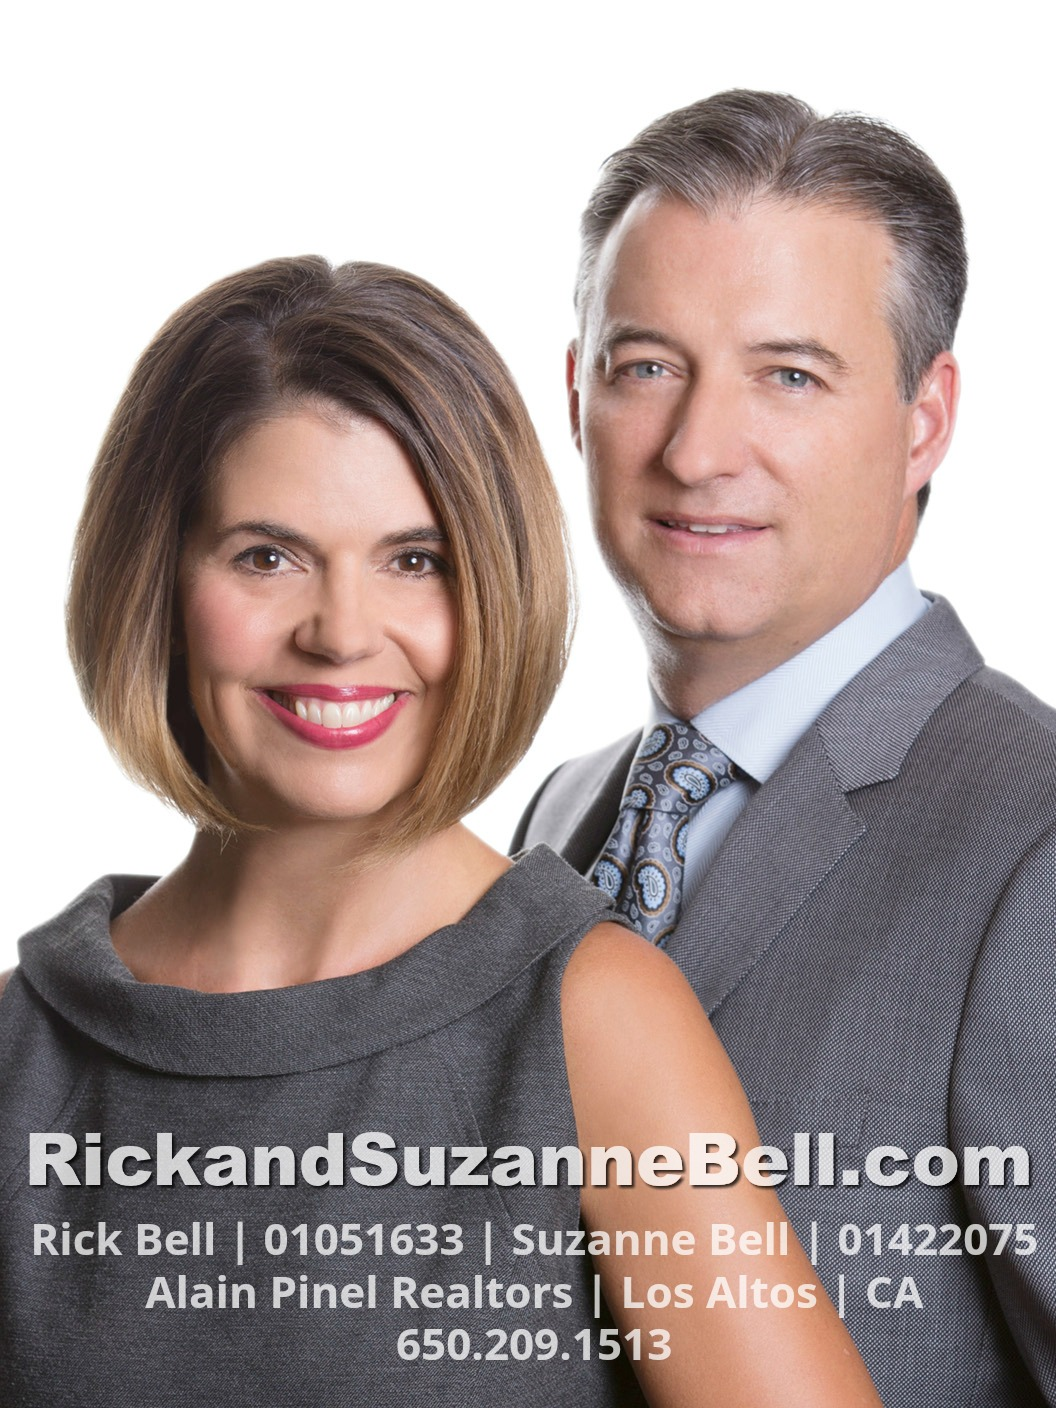 Rick and Suzanne Bell | Los Altos Realtors | Los Altos Hills Realtors